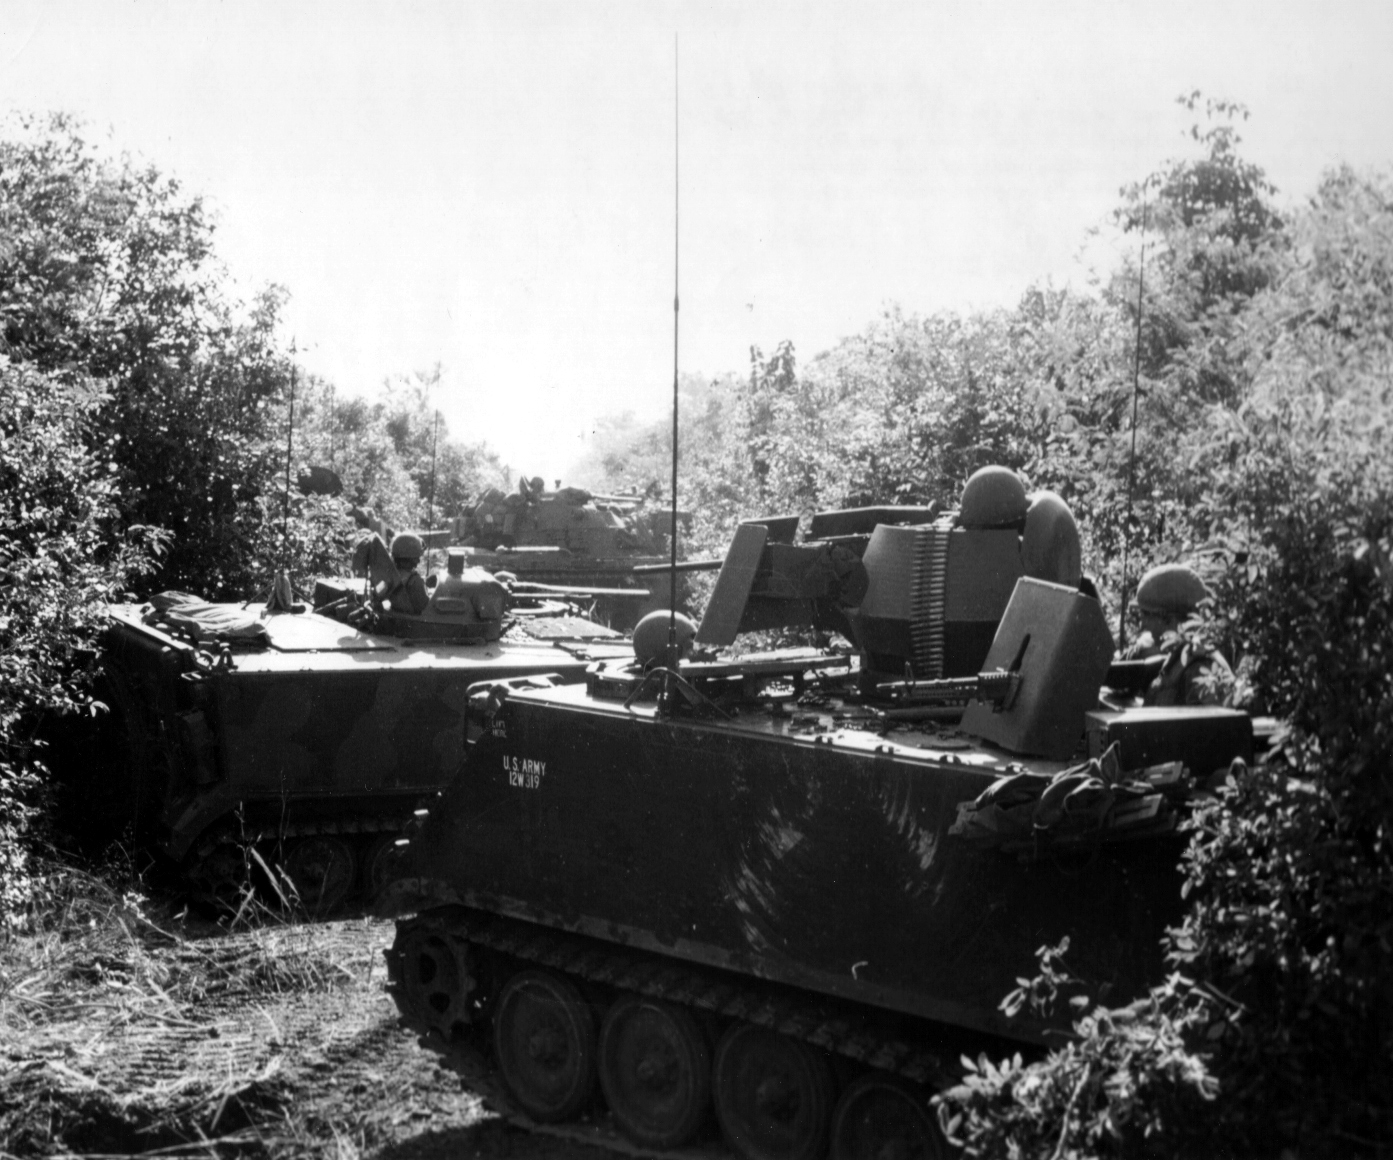 Vehicles of the 3/11 ACR assume a herringbone formation during Operation Cedar Falls. Pictured: M113A1 ACAV, M132 Armored Flamethrower & M48A2 Patton tank.